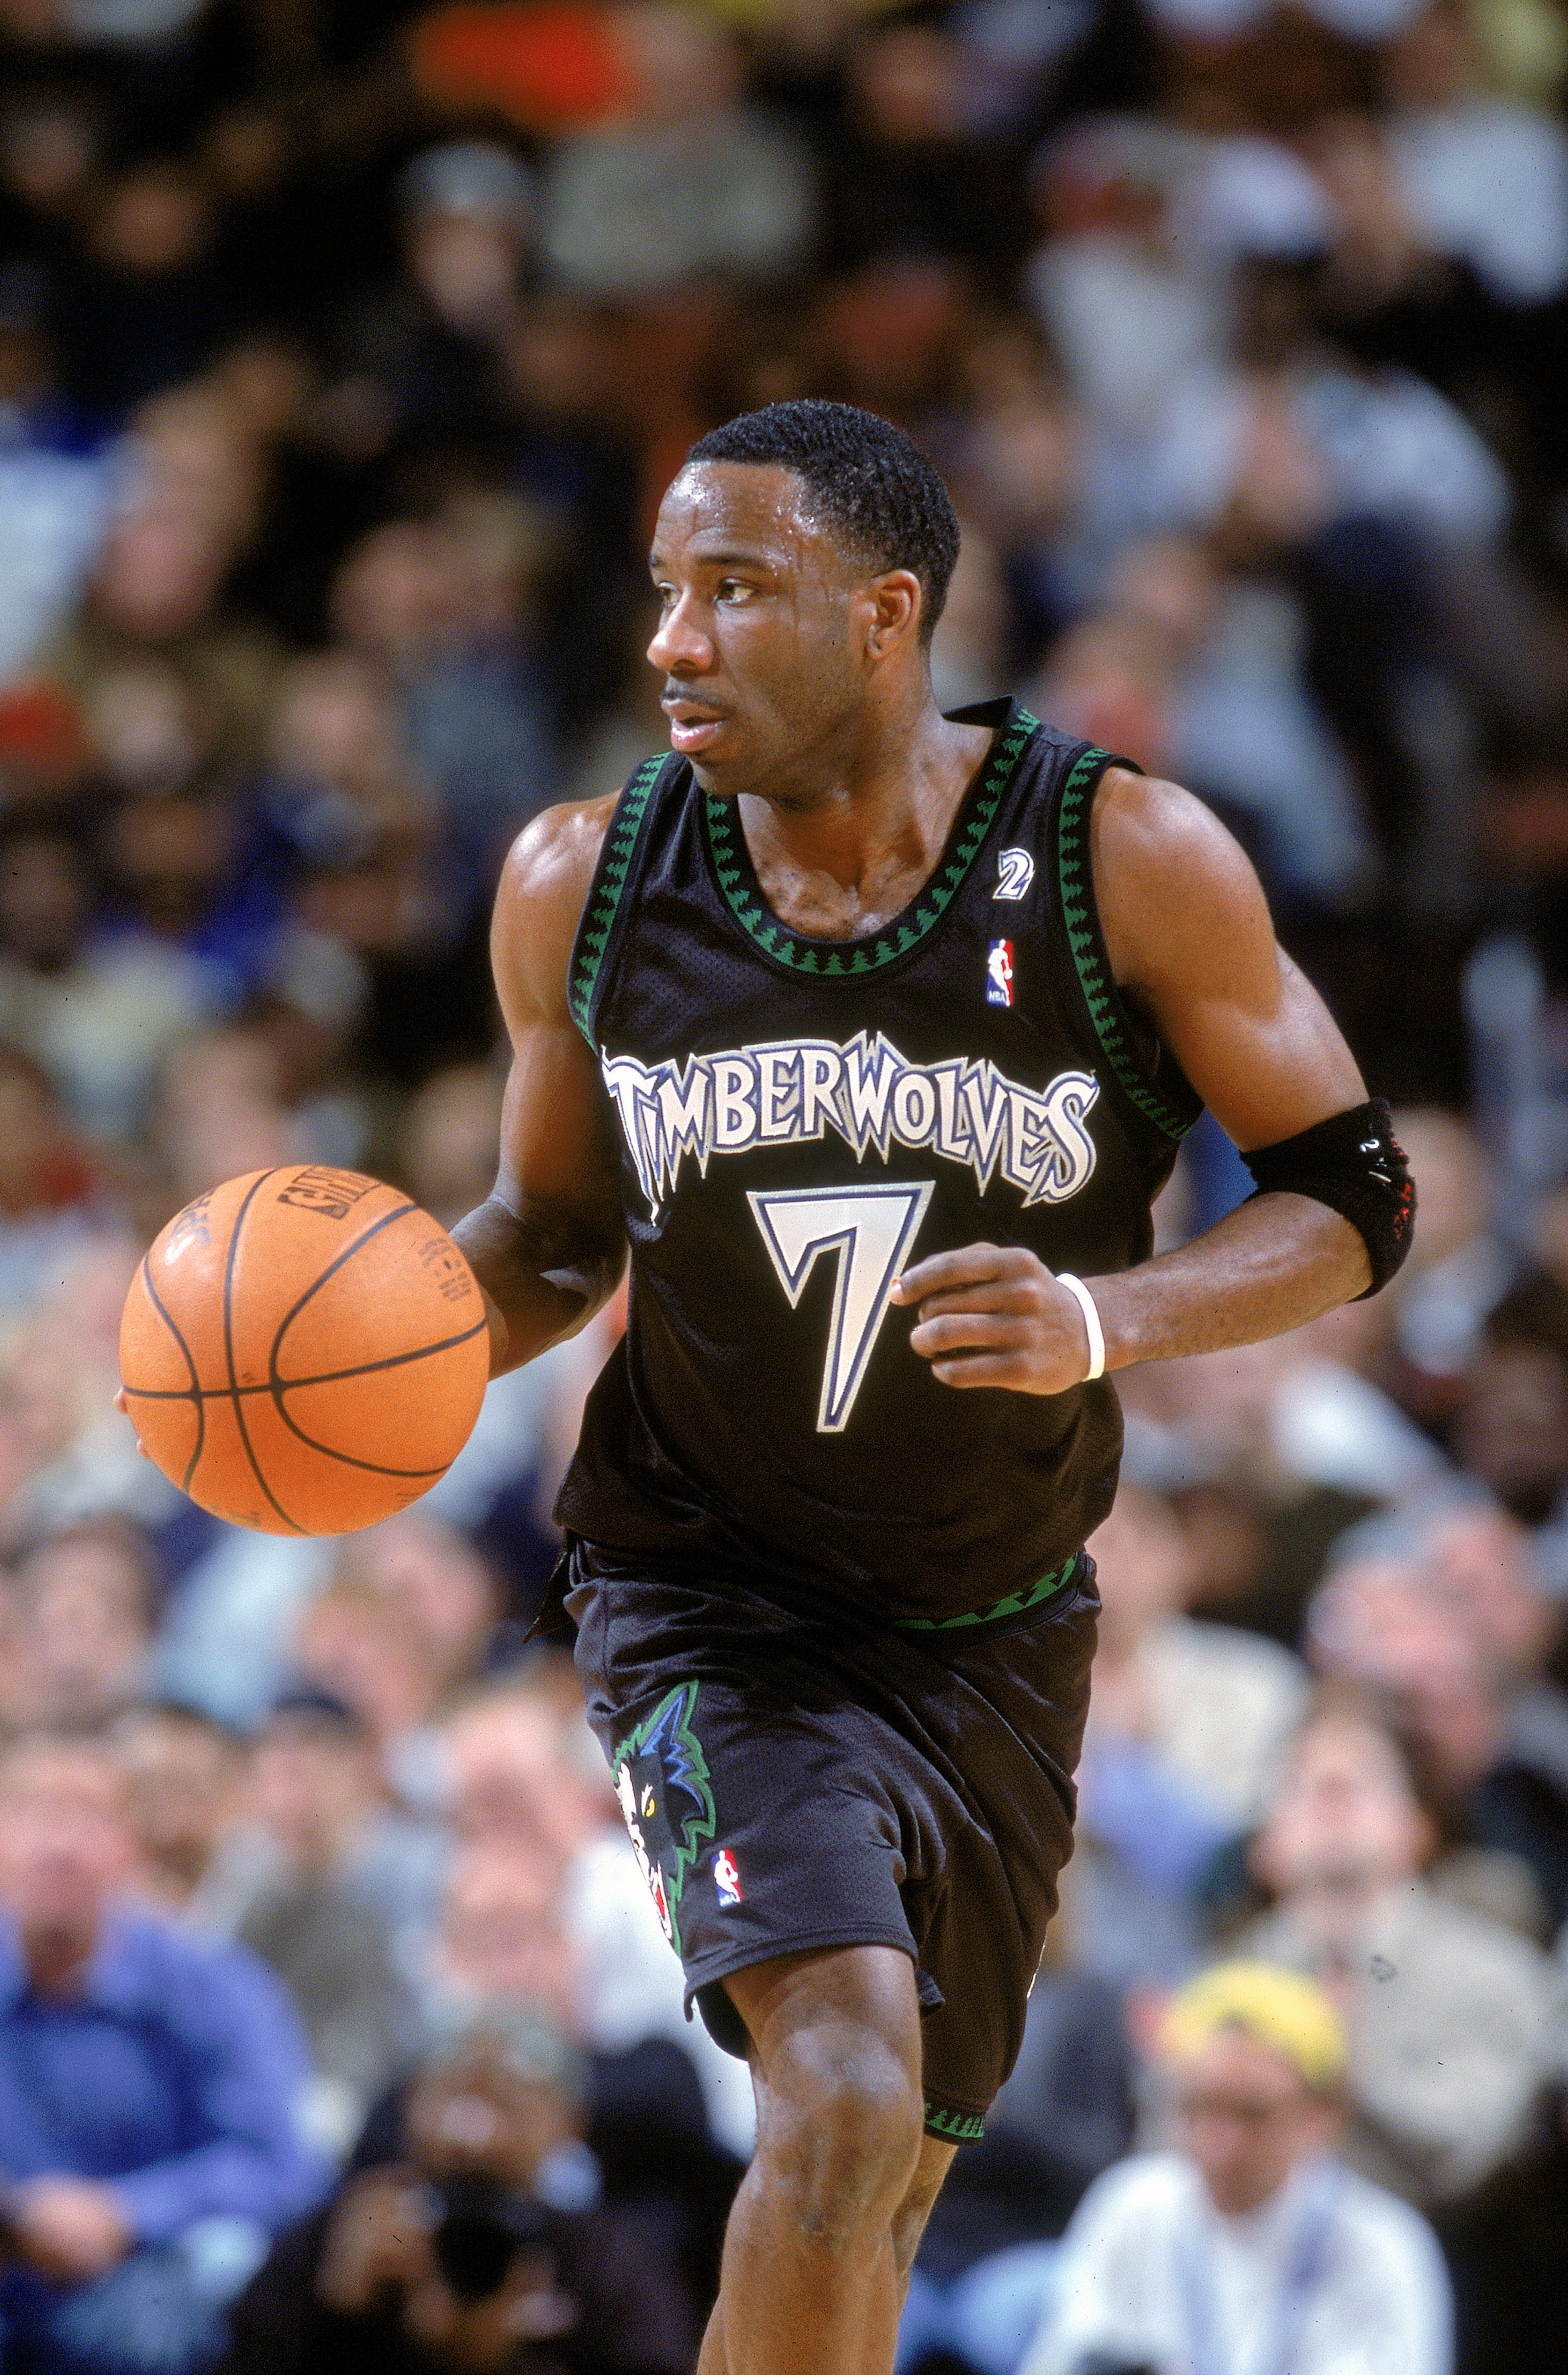 11 Dec 2000: Terrell Brandon #7 of the Minnesota Timberwolves dribbles the ball down the court during the game against the Philadelphia 76ers at the First Union Center in Philadelphia, Pennsylvania. The Timberwolves defeated the 76ers 96-91. NOTE TO USER: